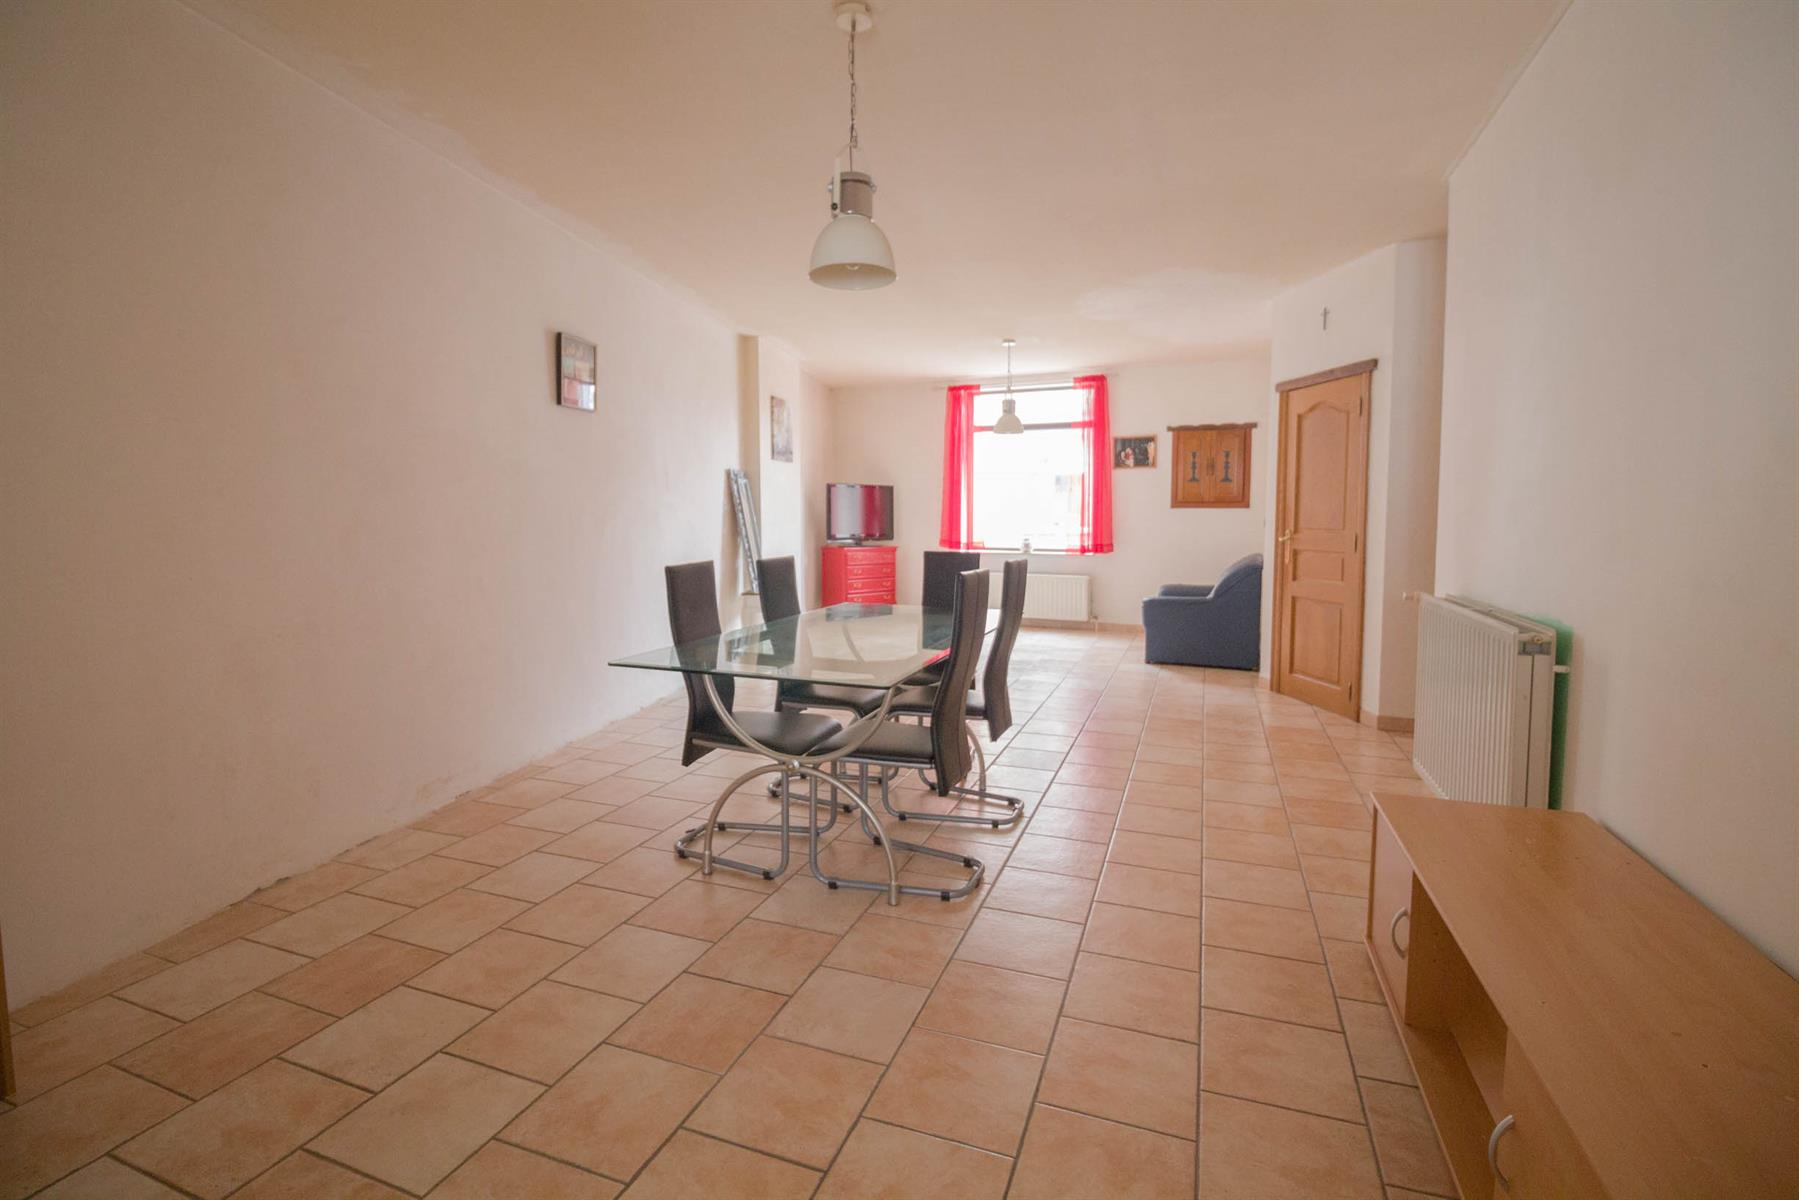 Maison - Courcelles (Trazegnies) - #4445047-4